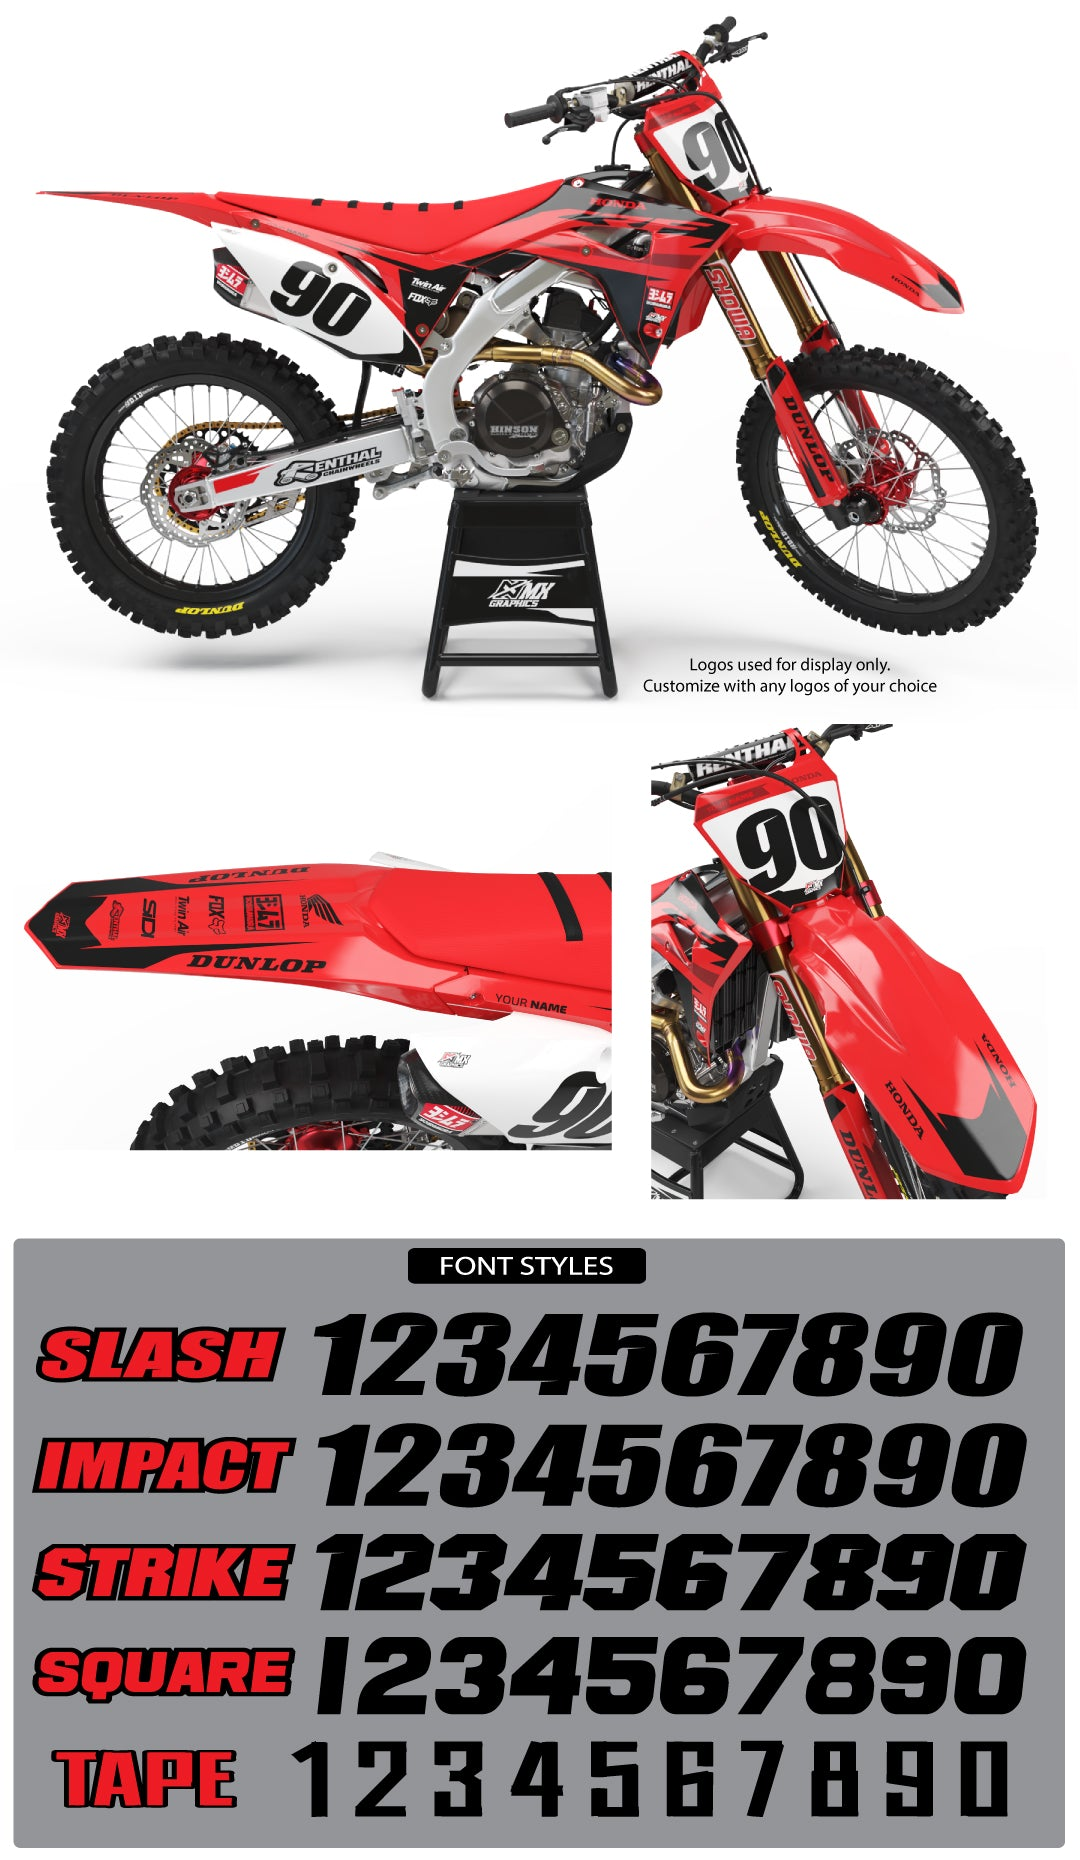 MX27 Graphic Kit for Honda's